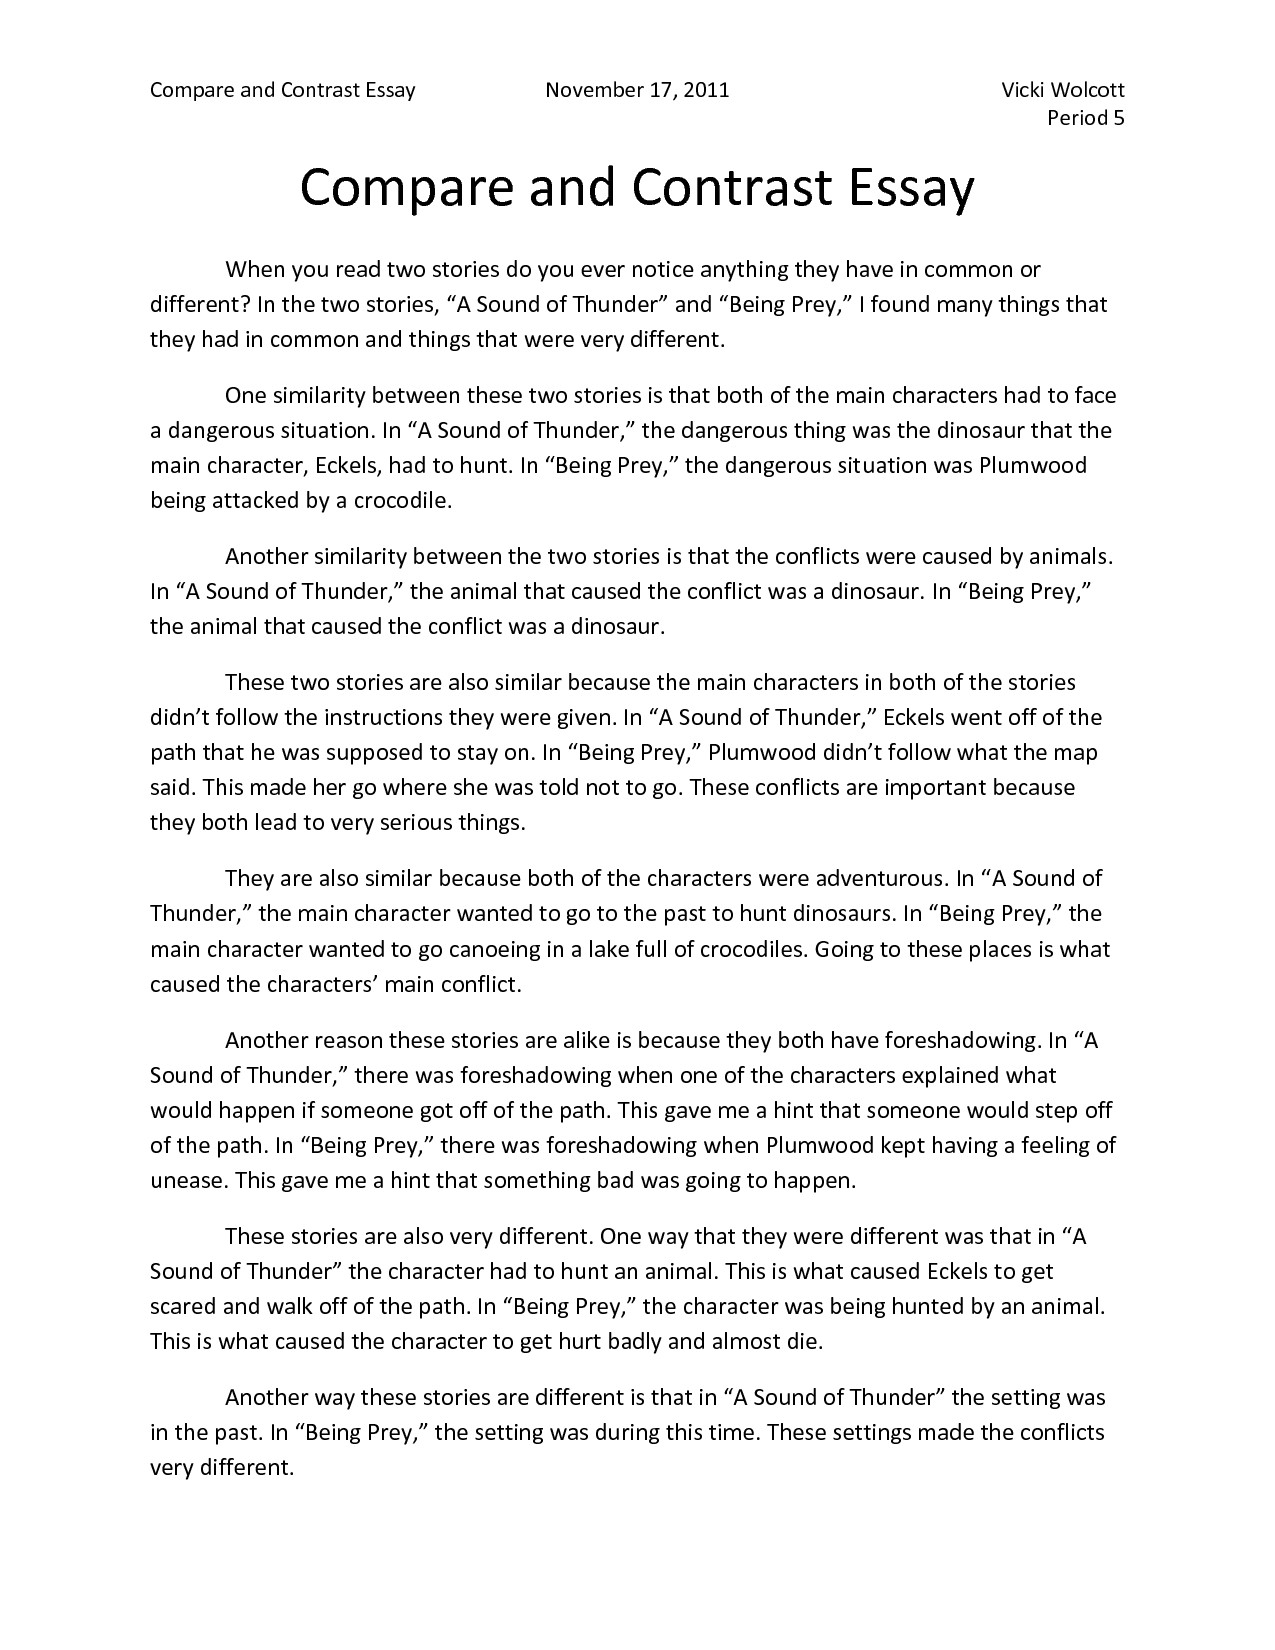 005 essay example an of compare and contrast comparison ideas